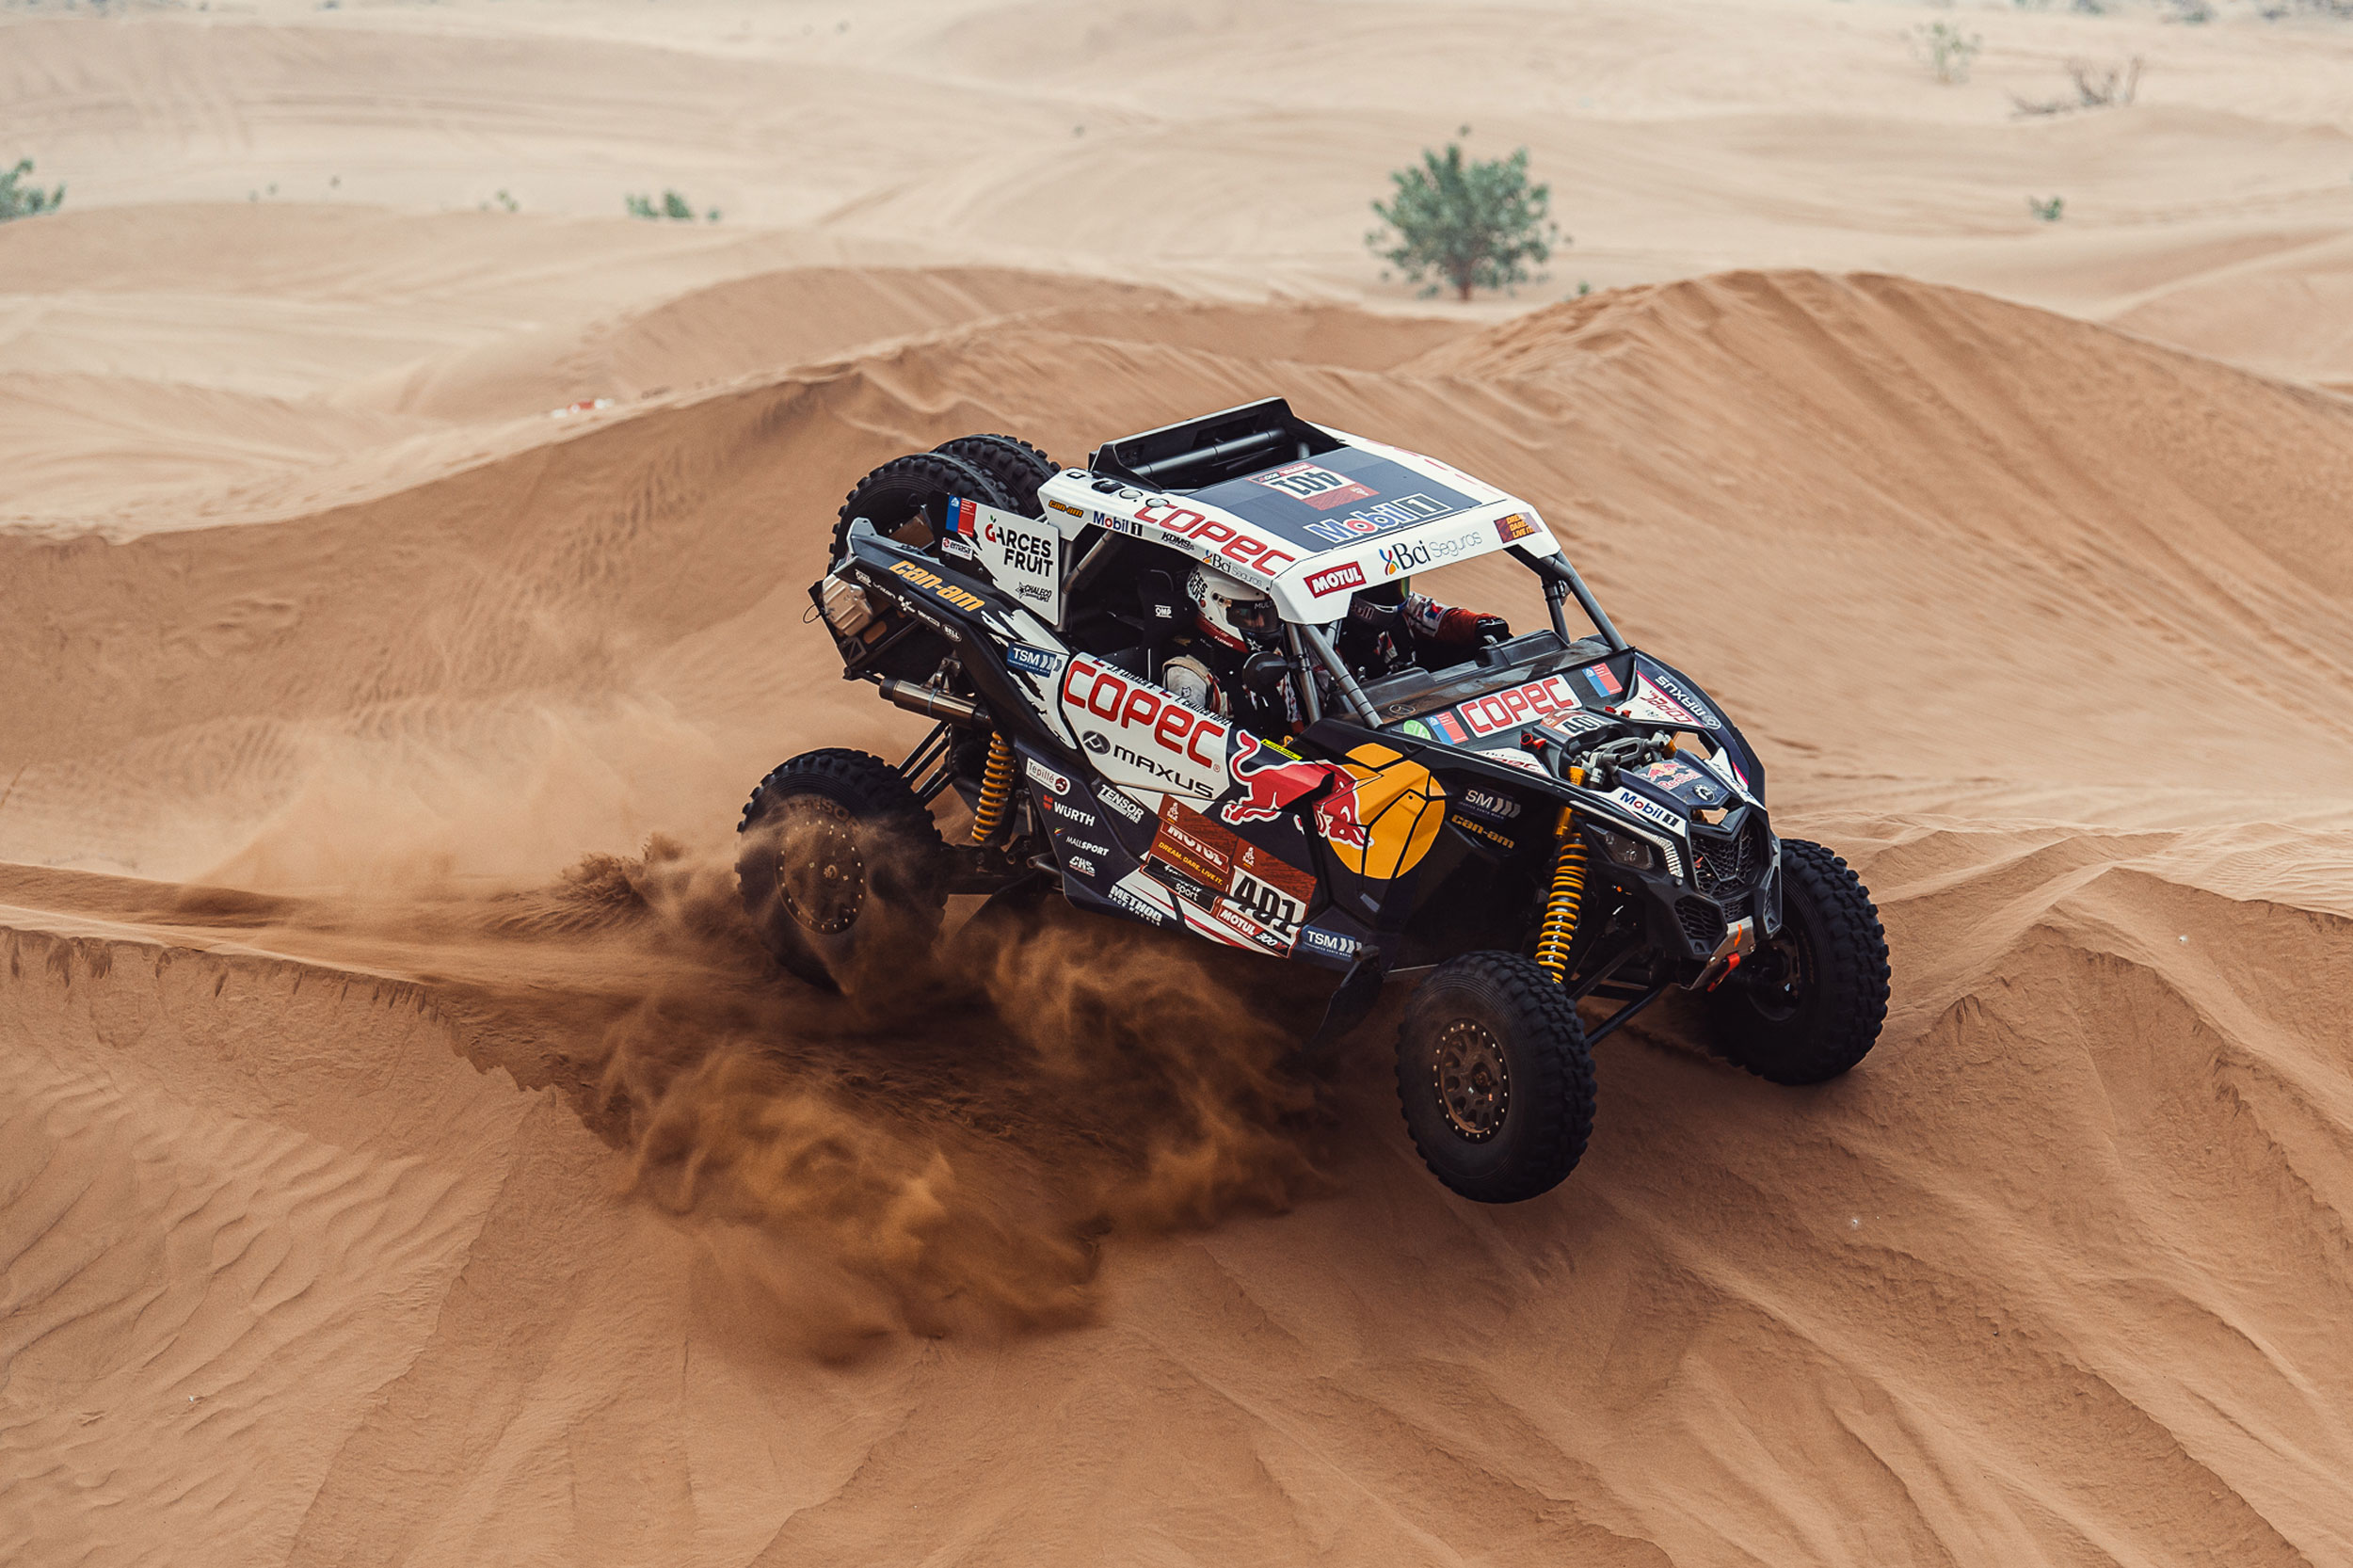 Dakar Can-Am 2021 Race rally dunes maverick